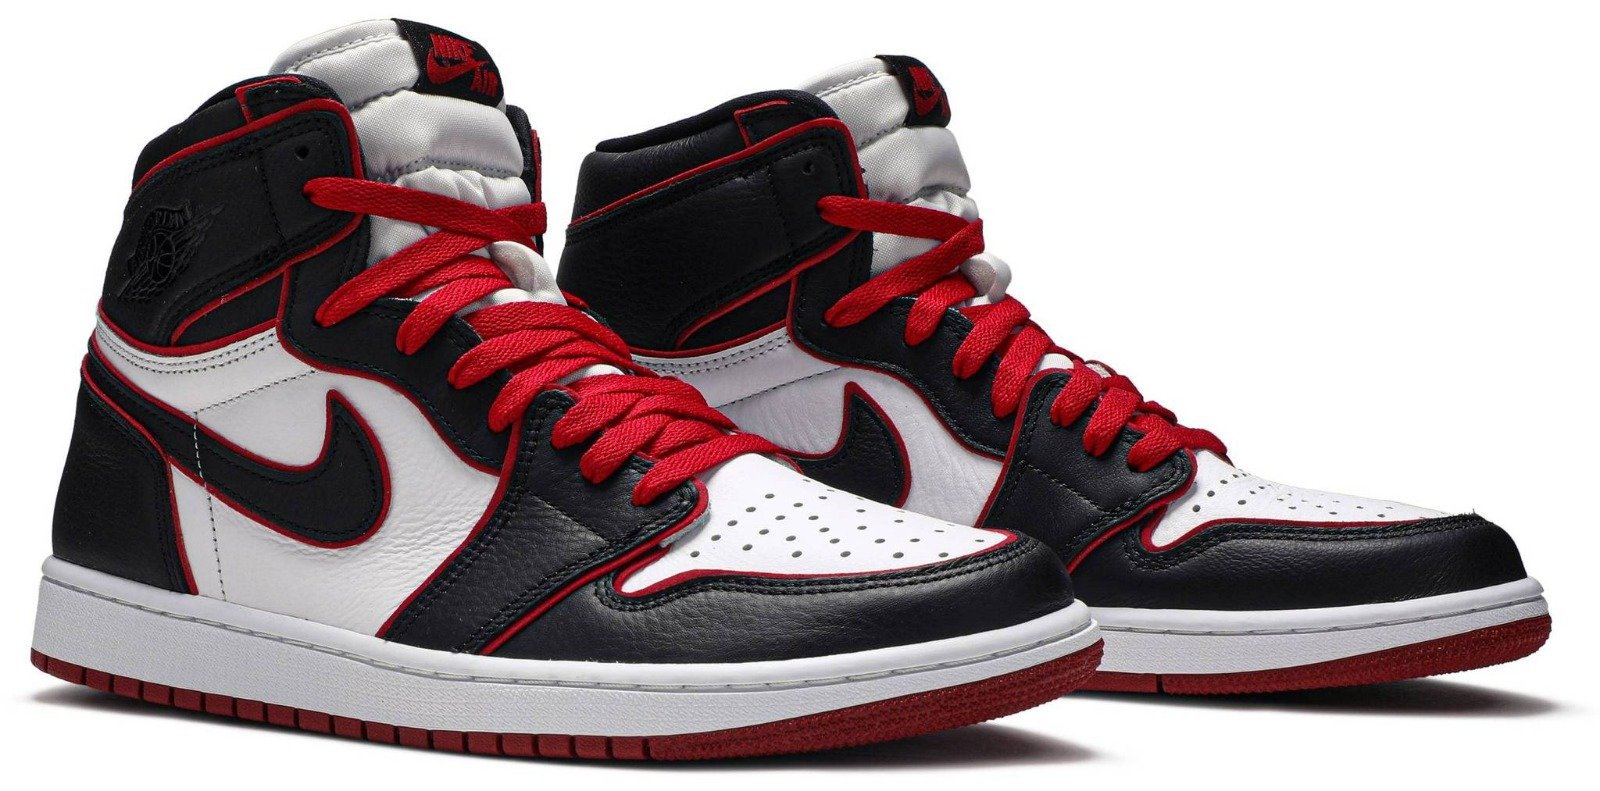 AIR JORDAN 1 HIGH BLOODLINE